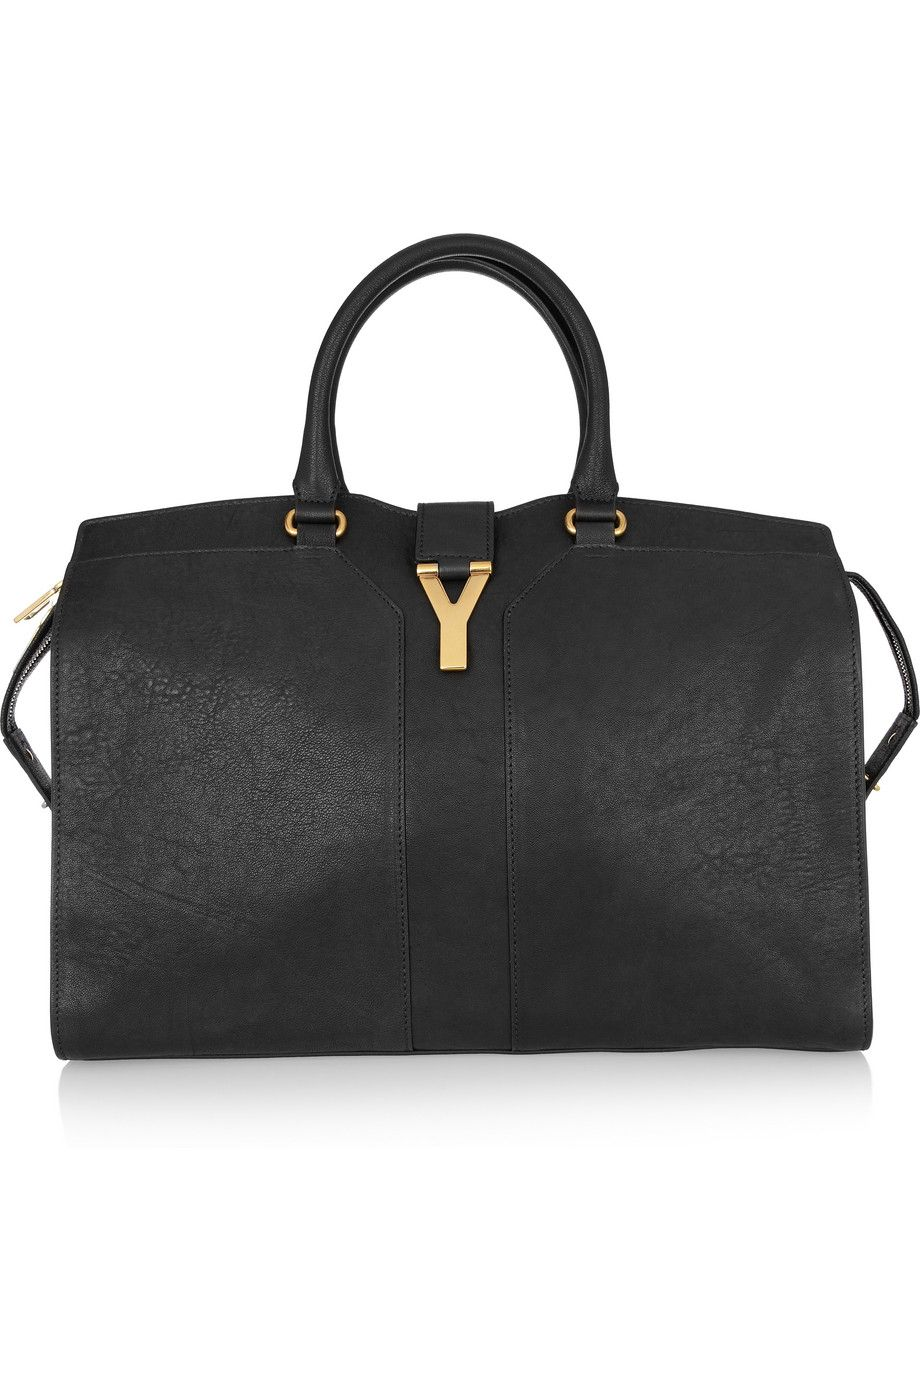 Saint Laurent - Cabas Chyc Large leather shopper